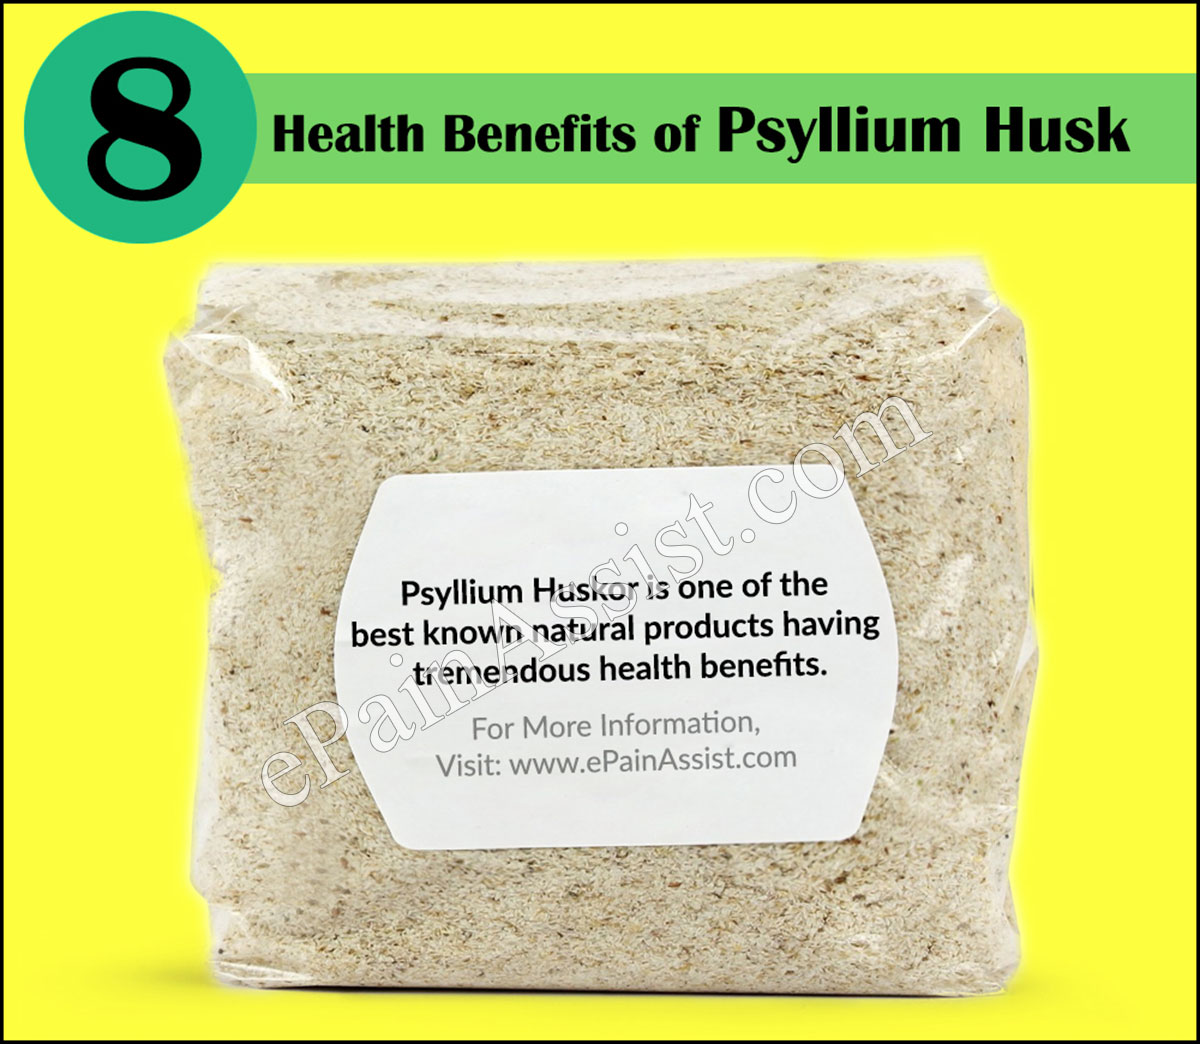 Health Benefits of Psyllium Husk